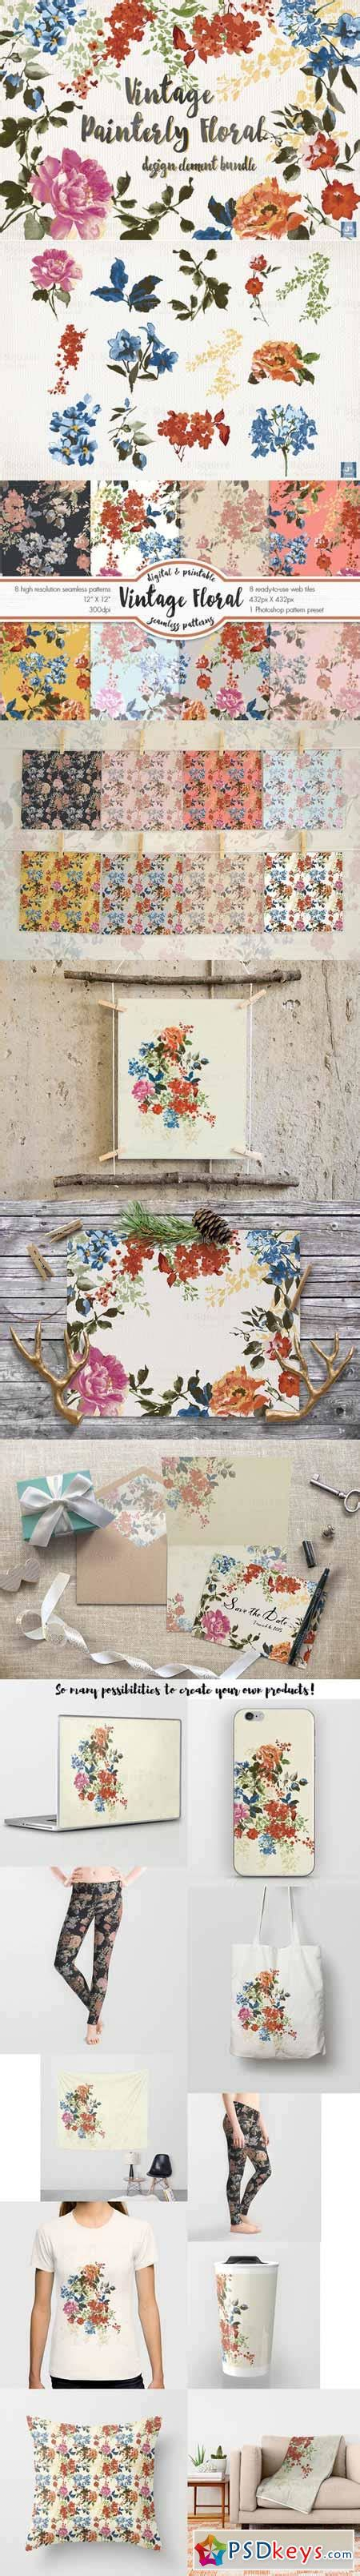 design elements bundle vintage floral design element bundle 479306 187 free